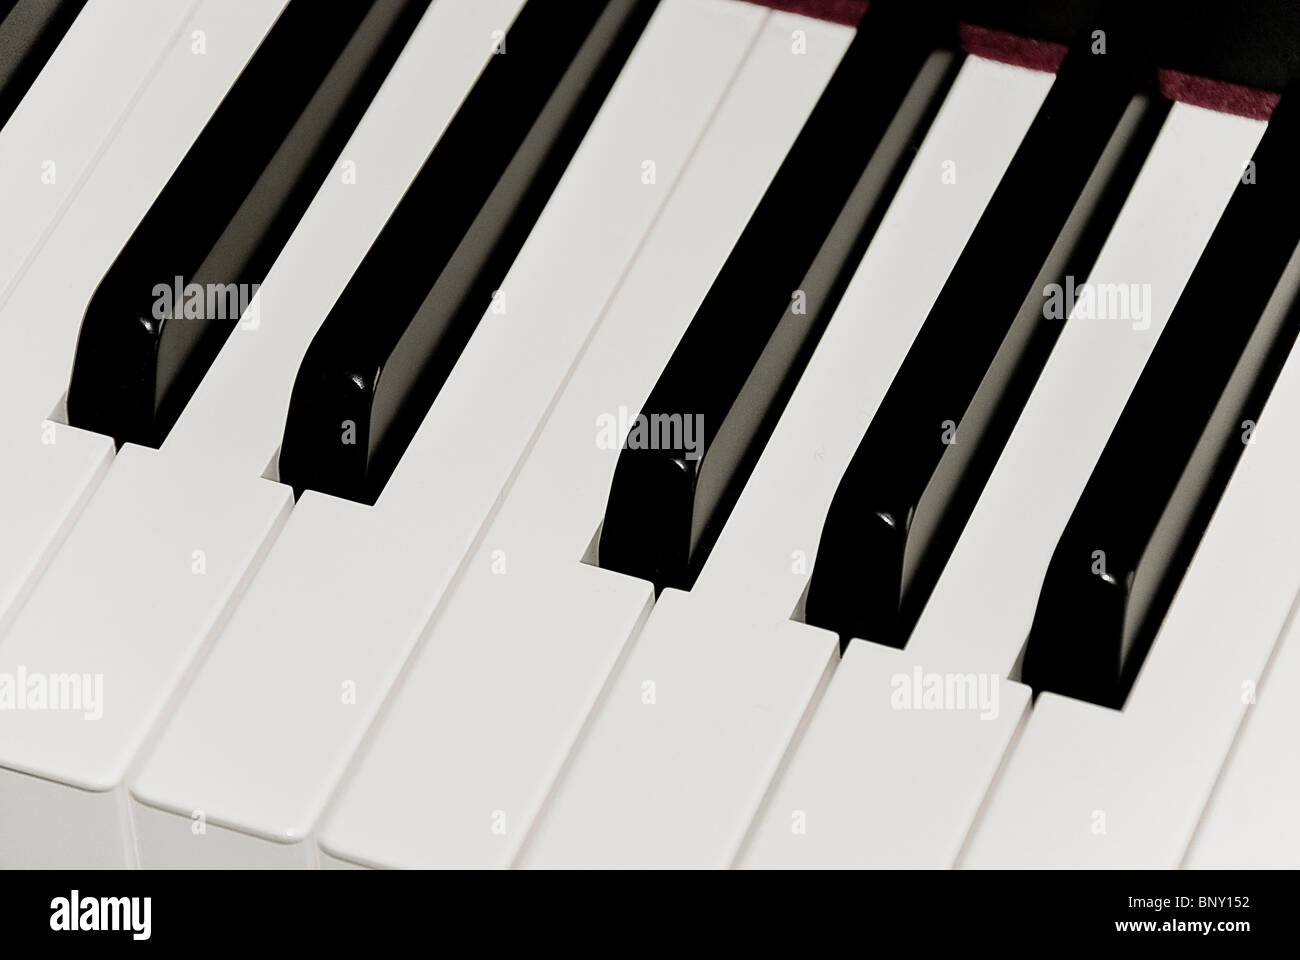 A closeup of black and white keys of piano keyboard featuring one octave key set. - Stock Image